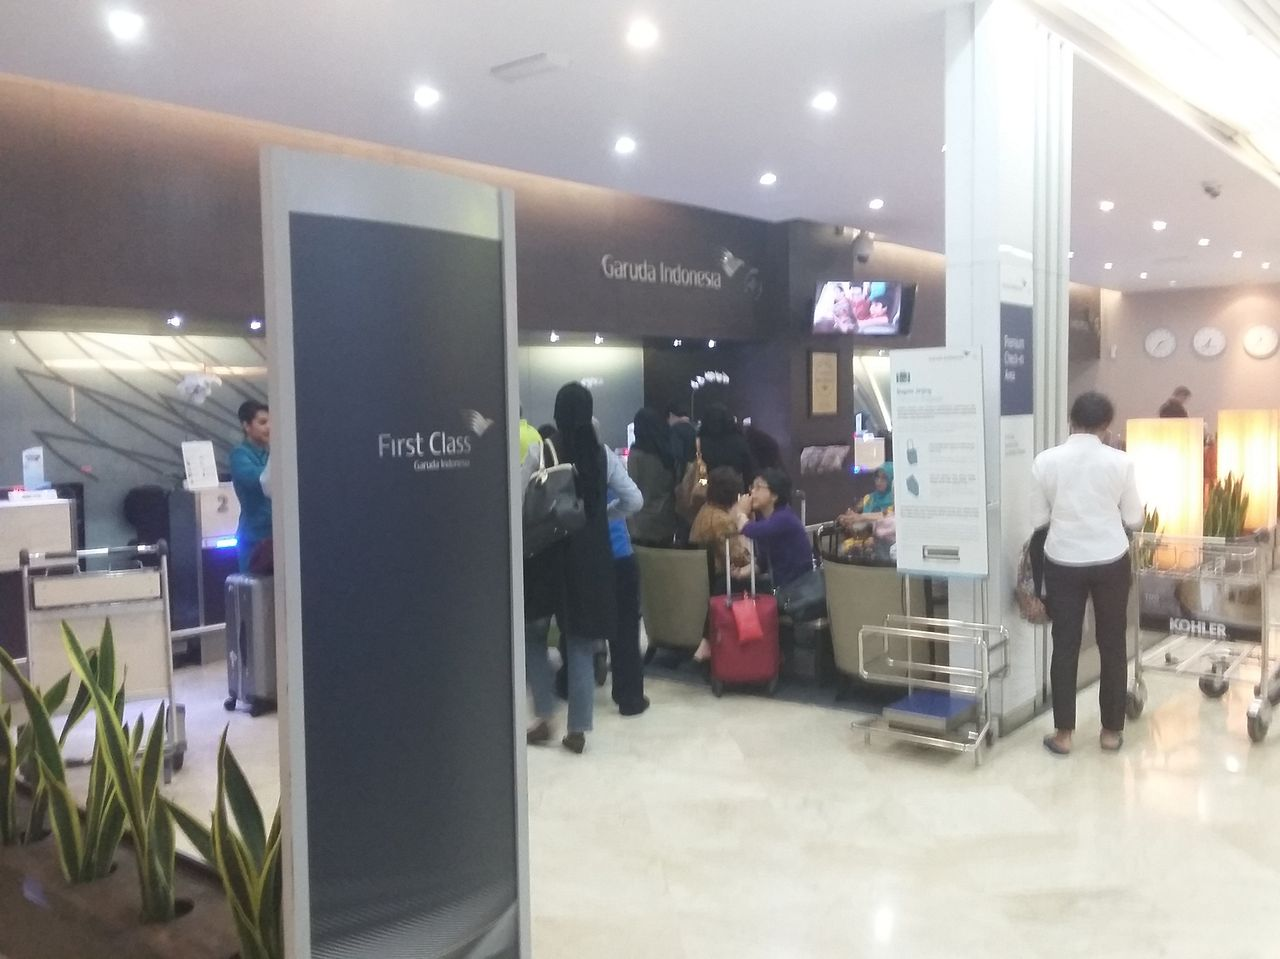 My flight from surabaya sub i proceed to first business class check